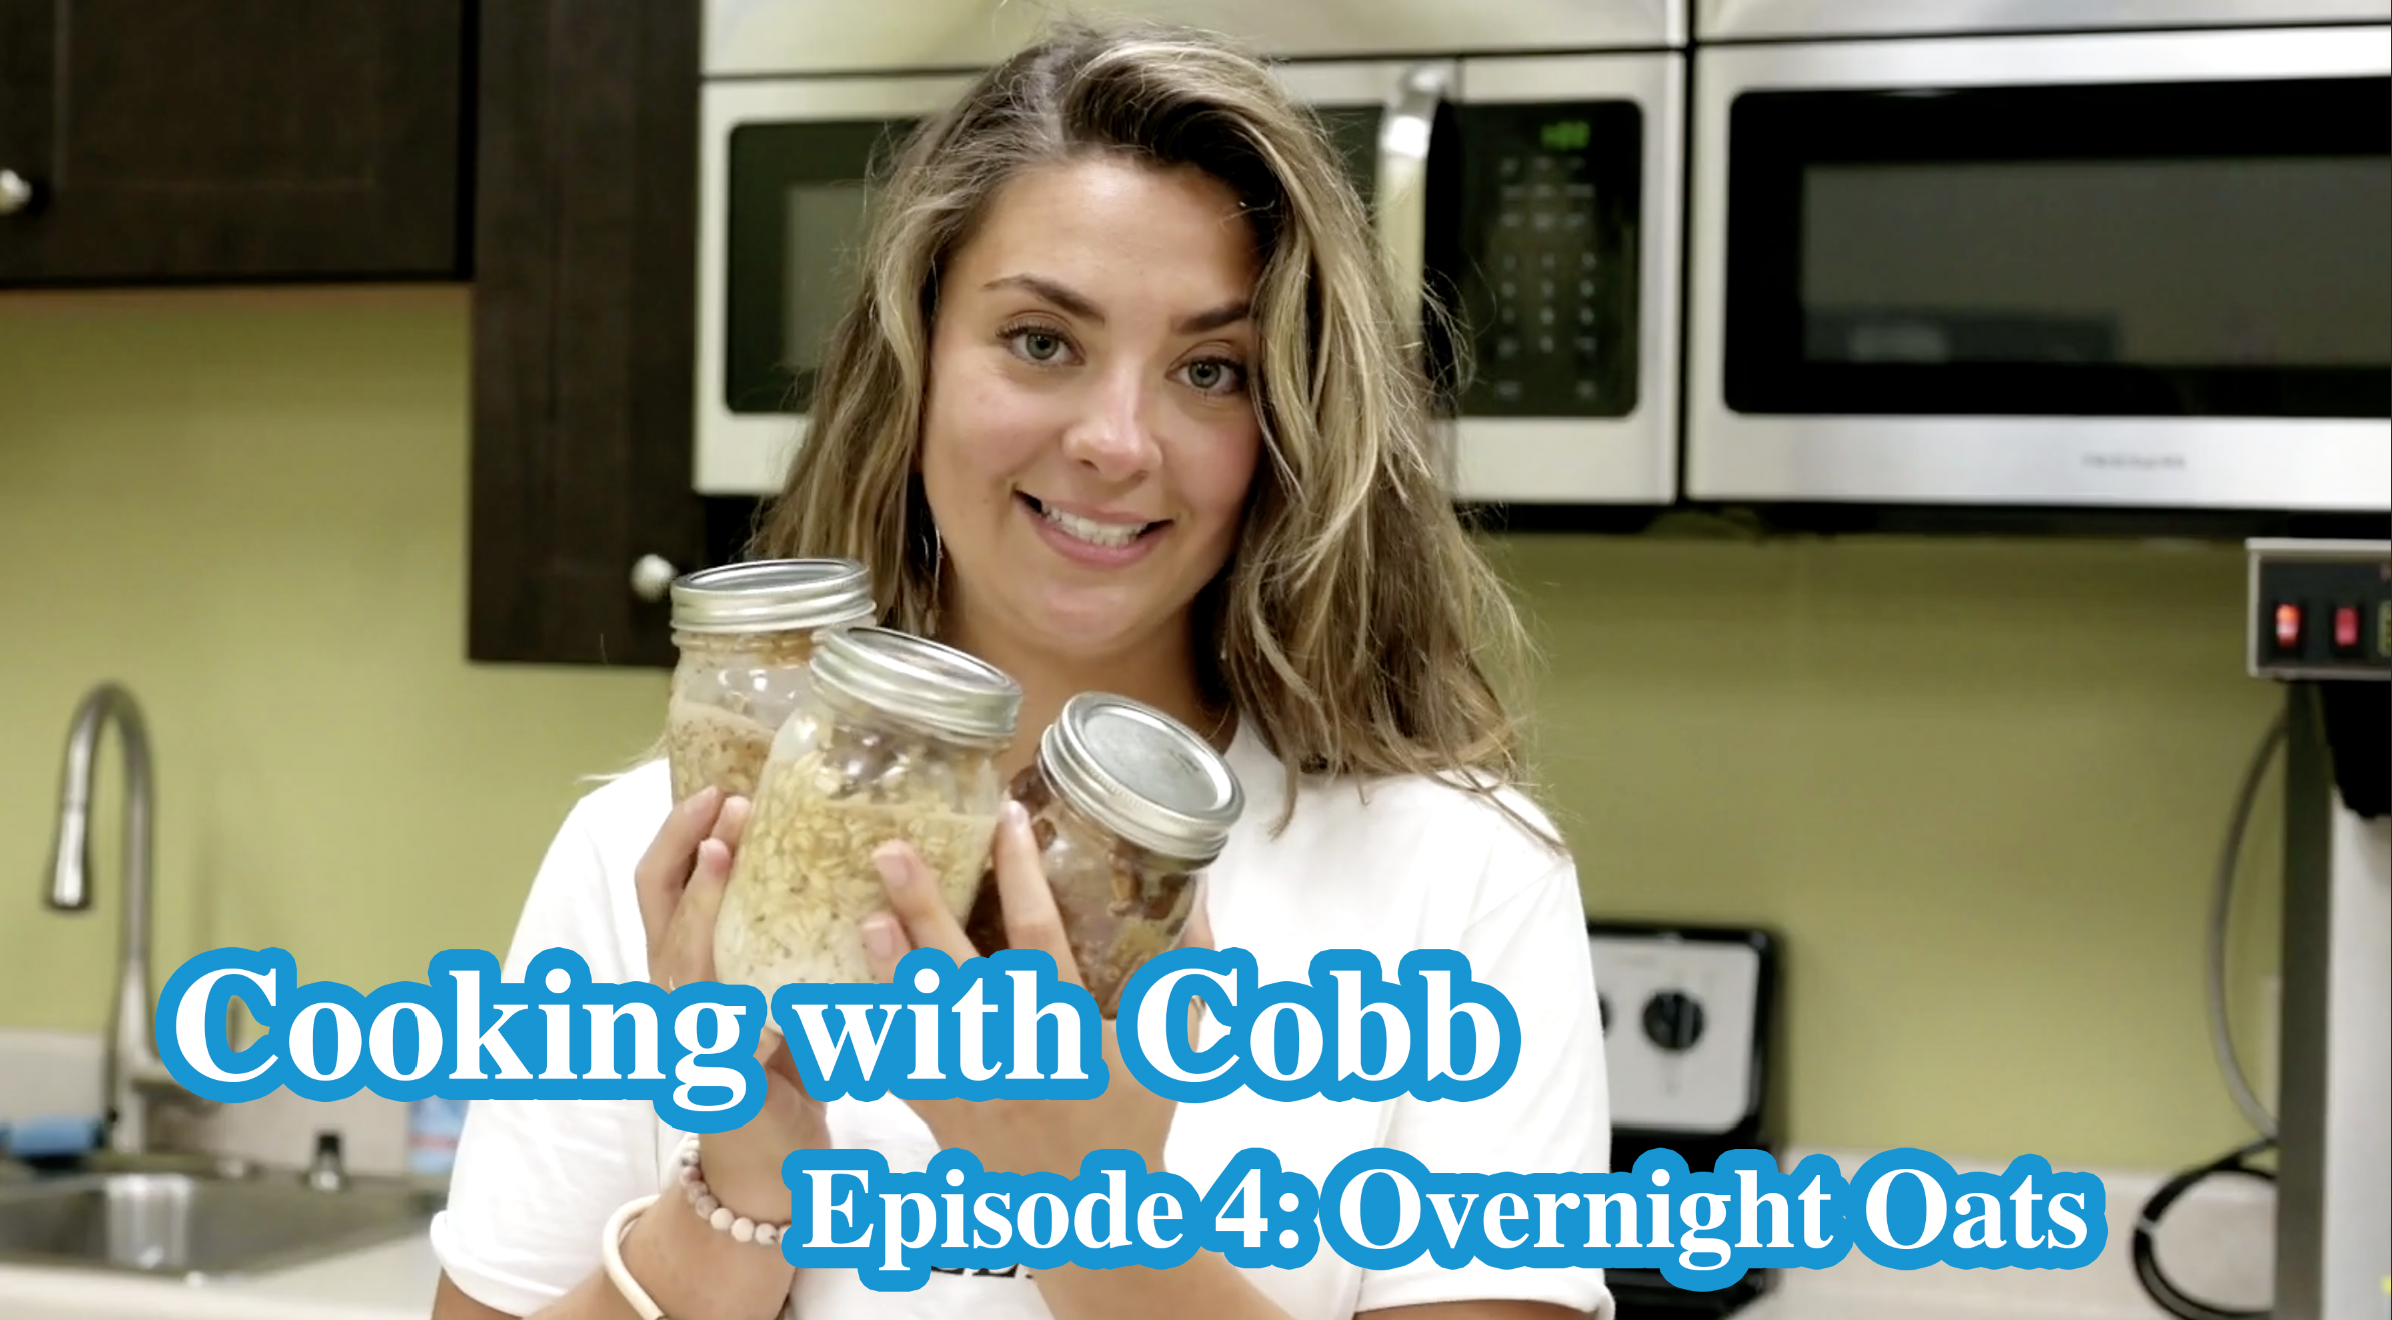 Cooking with Cobb - Episode 04 Overnight Oats